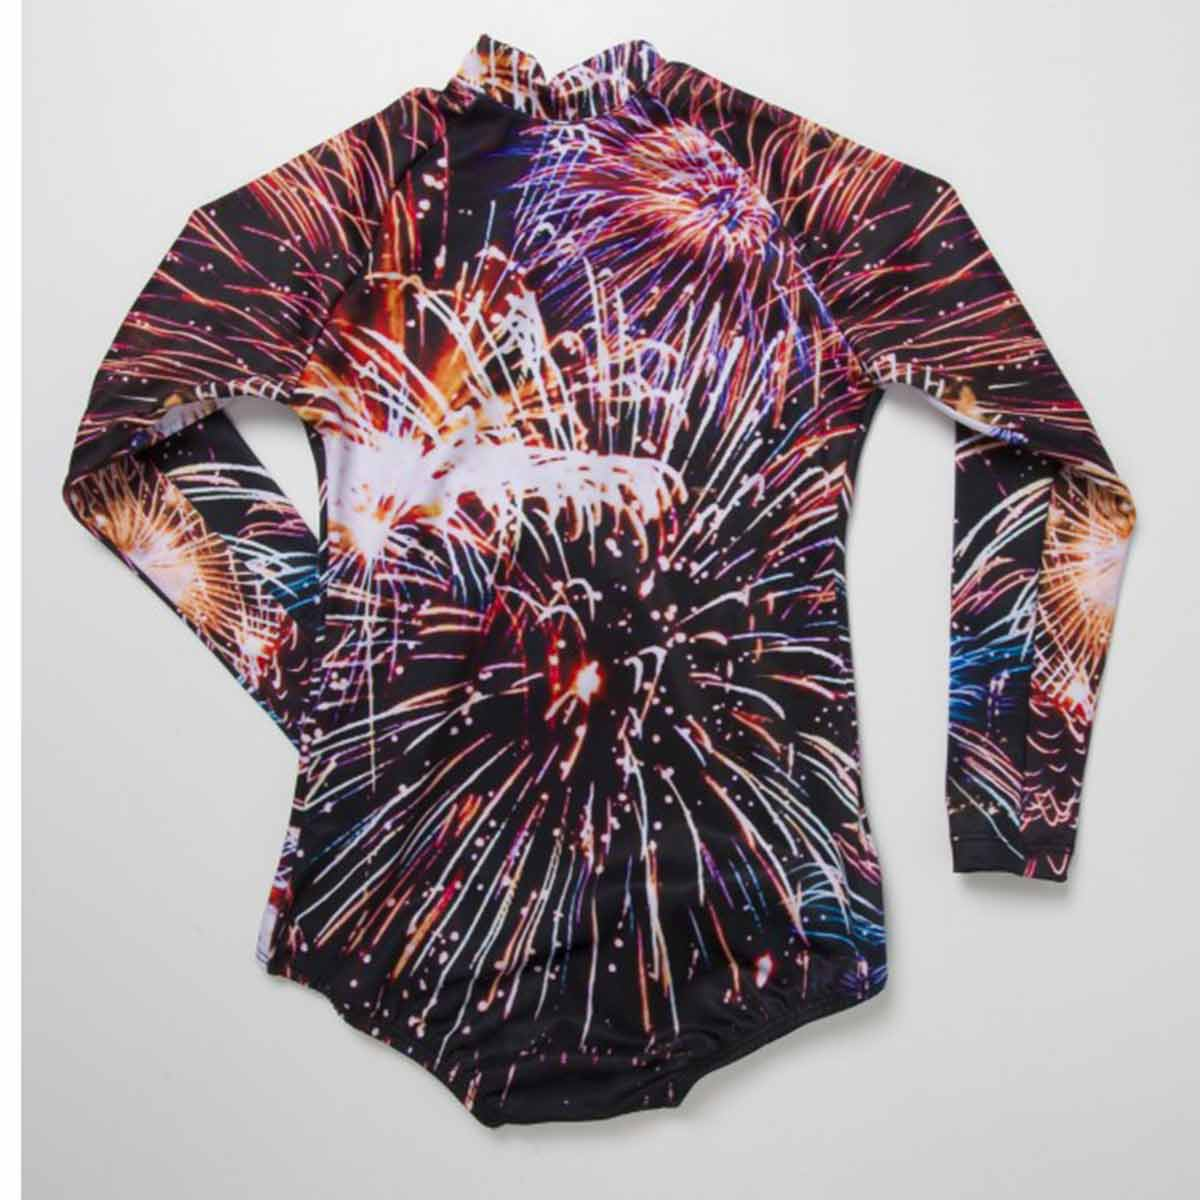 FIREWORKS LONG SLEEVE SWIMSUIT